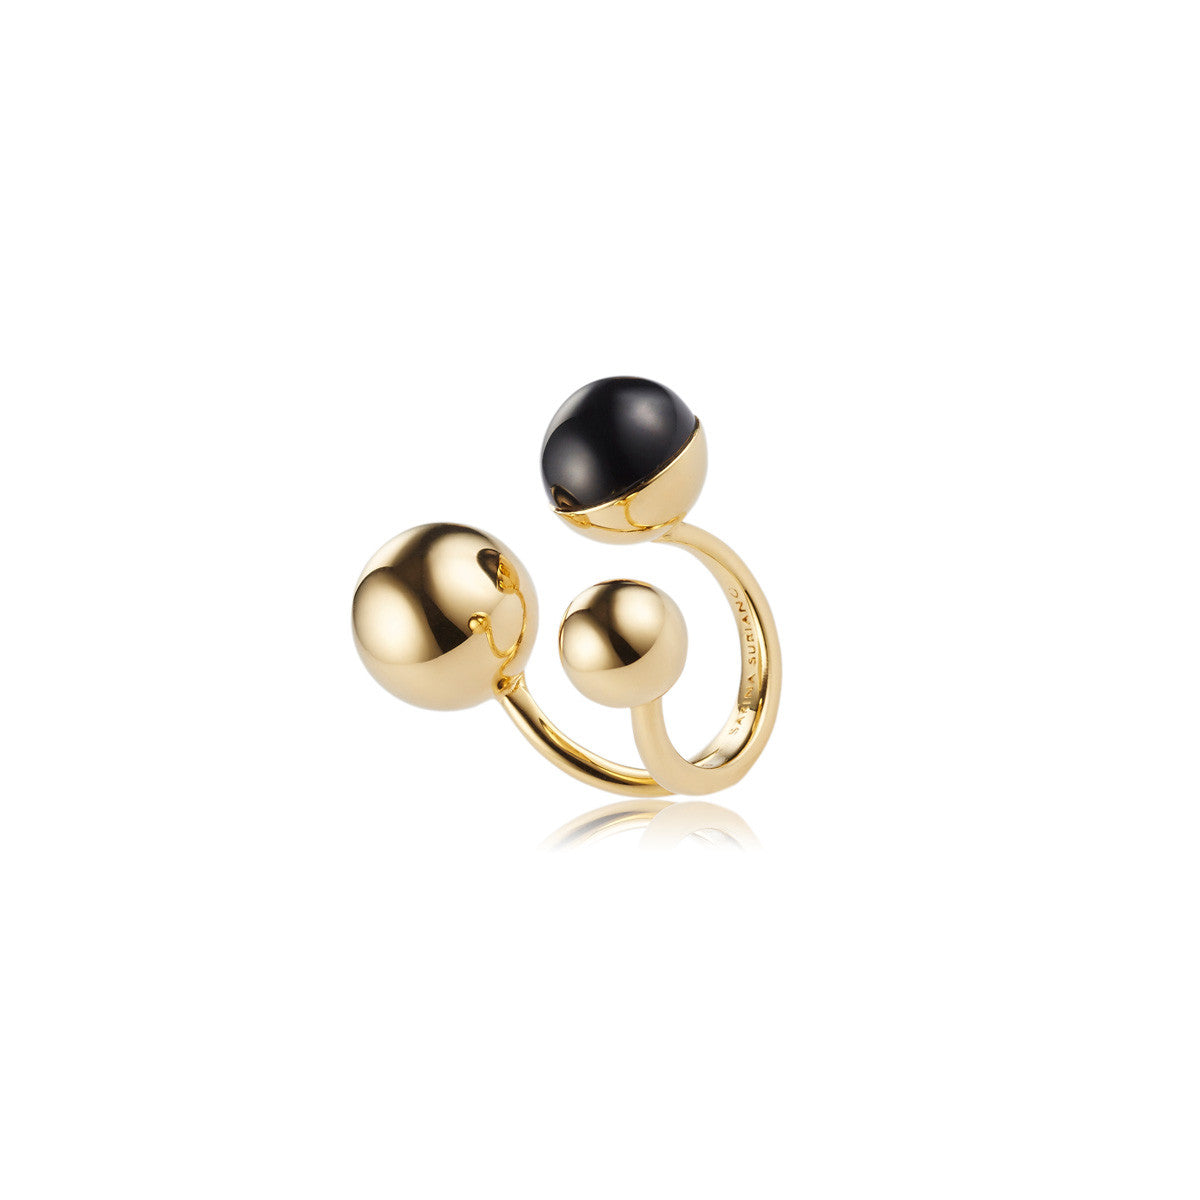 Solid brass, 18K gold plated Celestine ring topped with black onyx - side